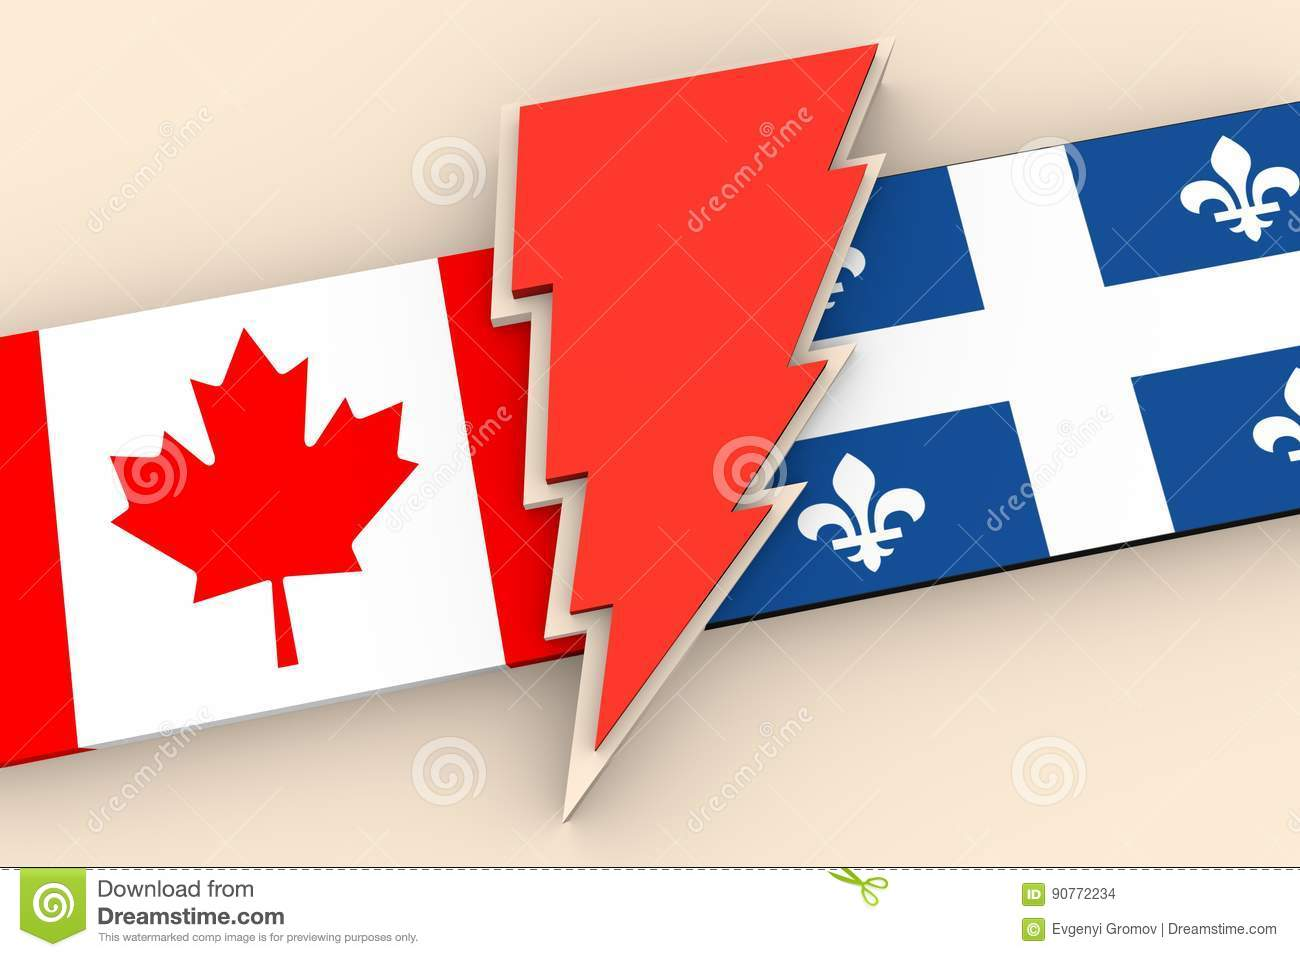 Relationships between Canada and Quebec